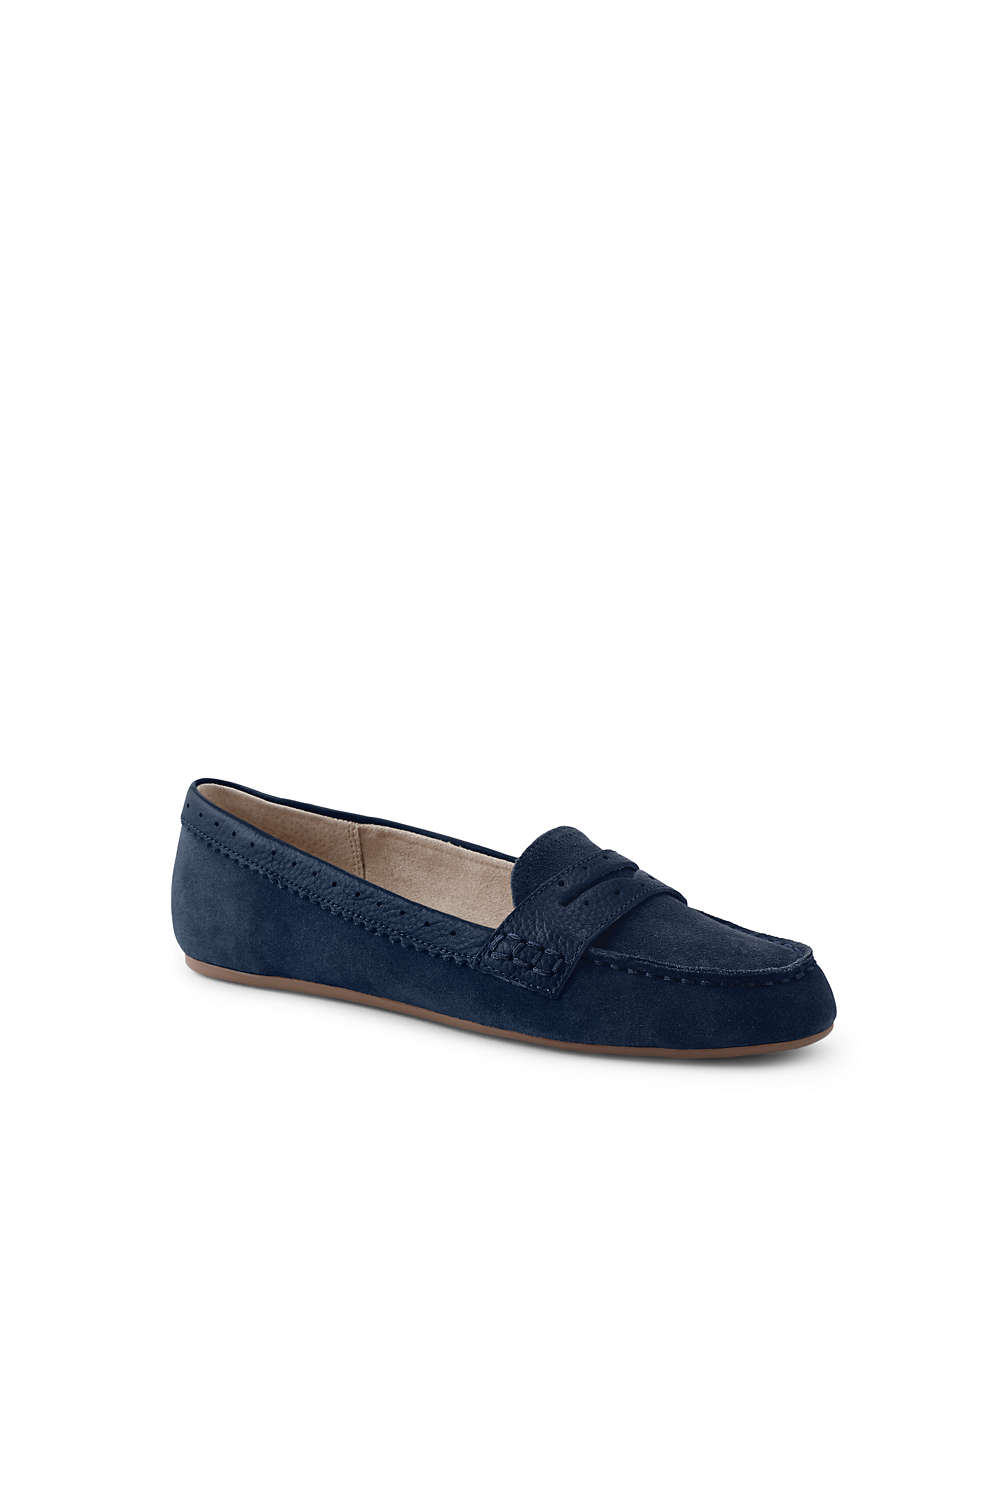 fa915e5f1f5 Women s Suede Everyday Comfort Penny Loafers from Lands  End